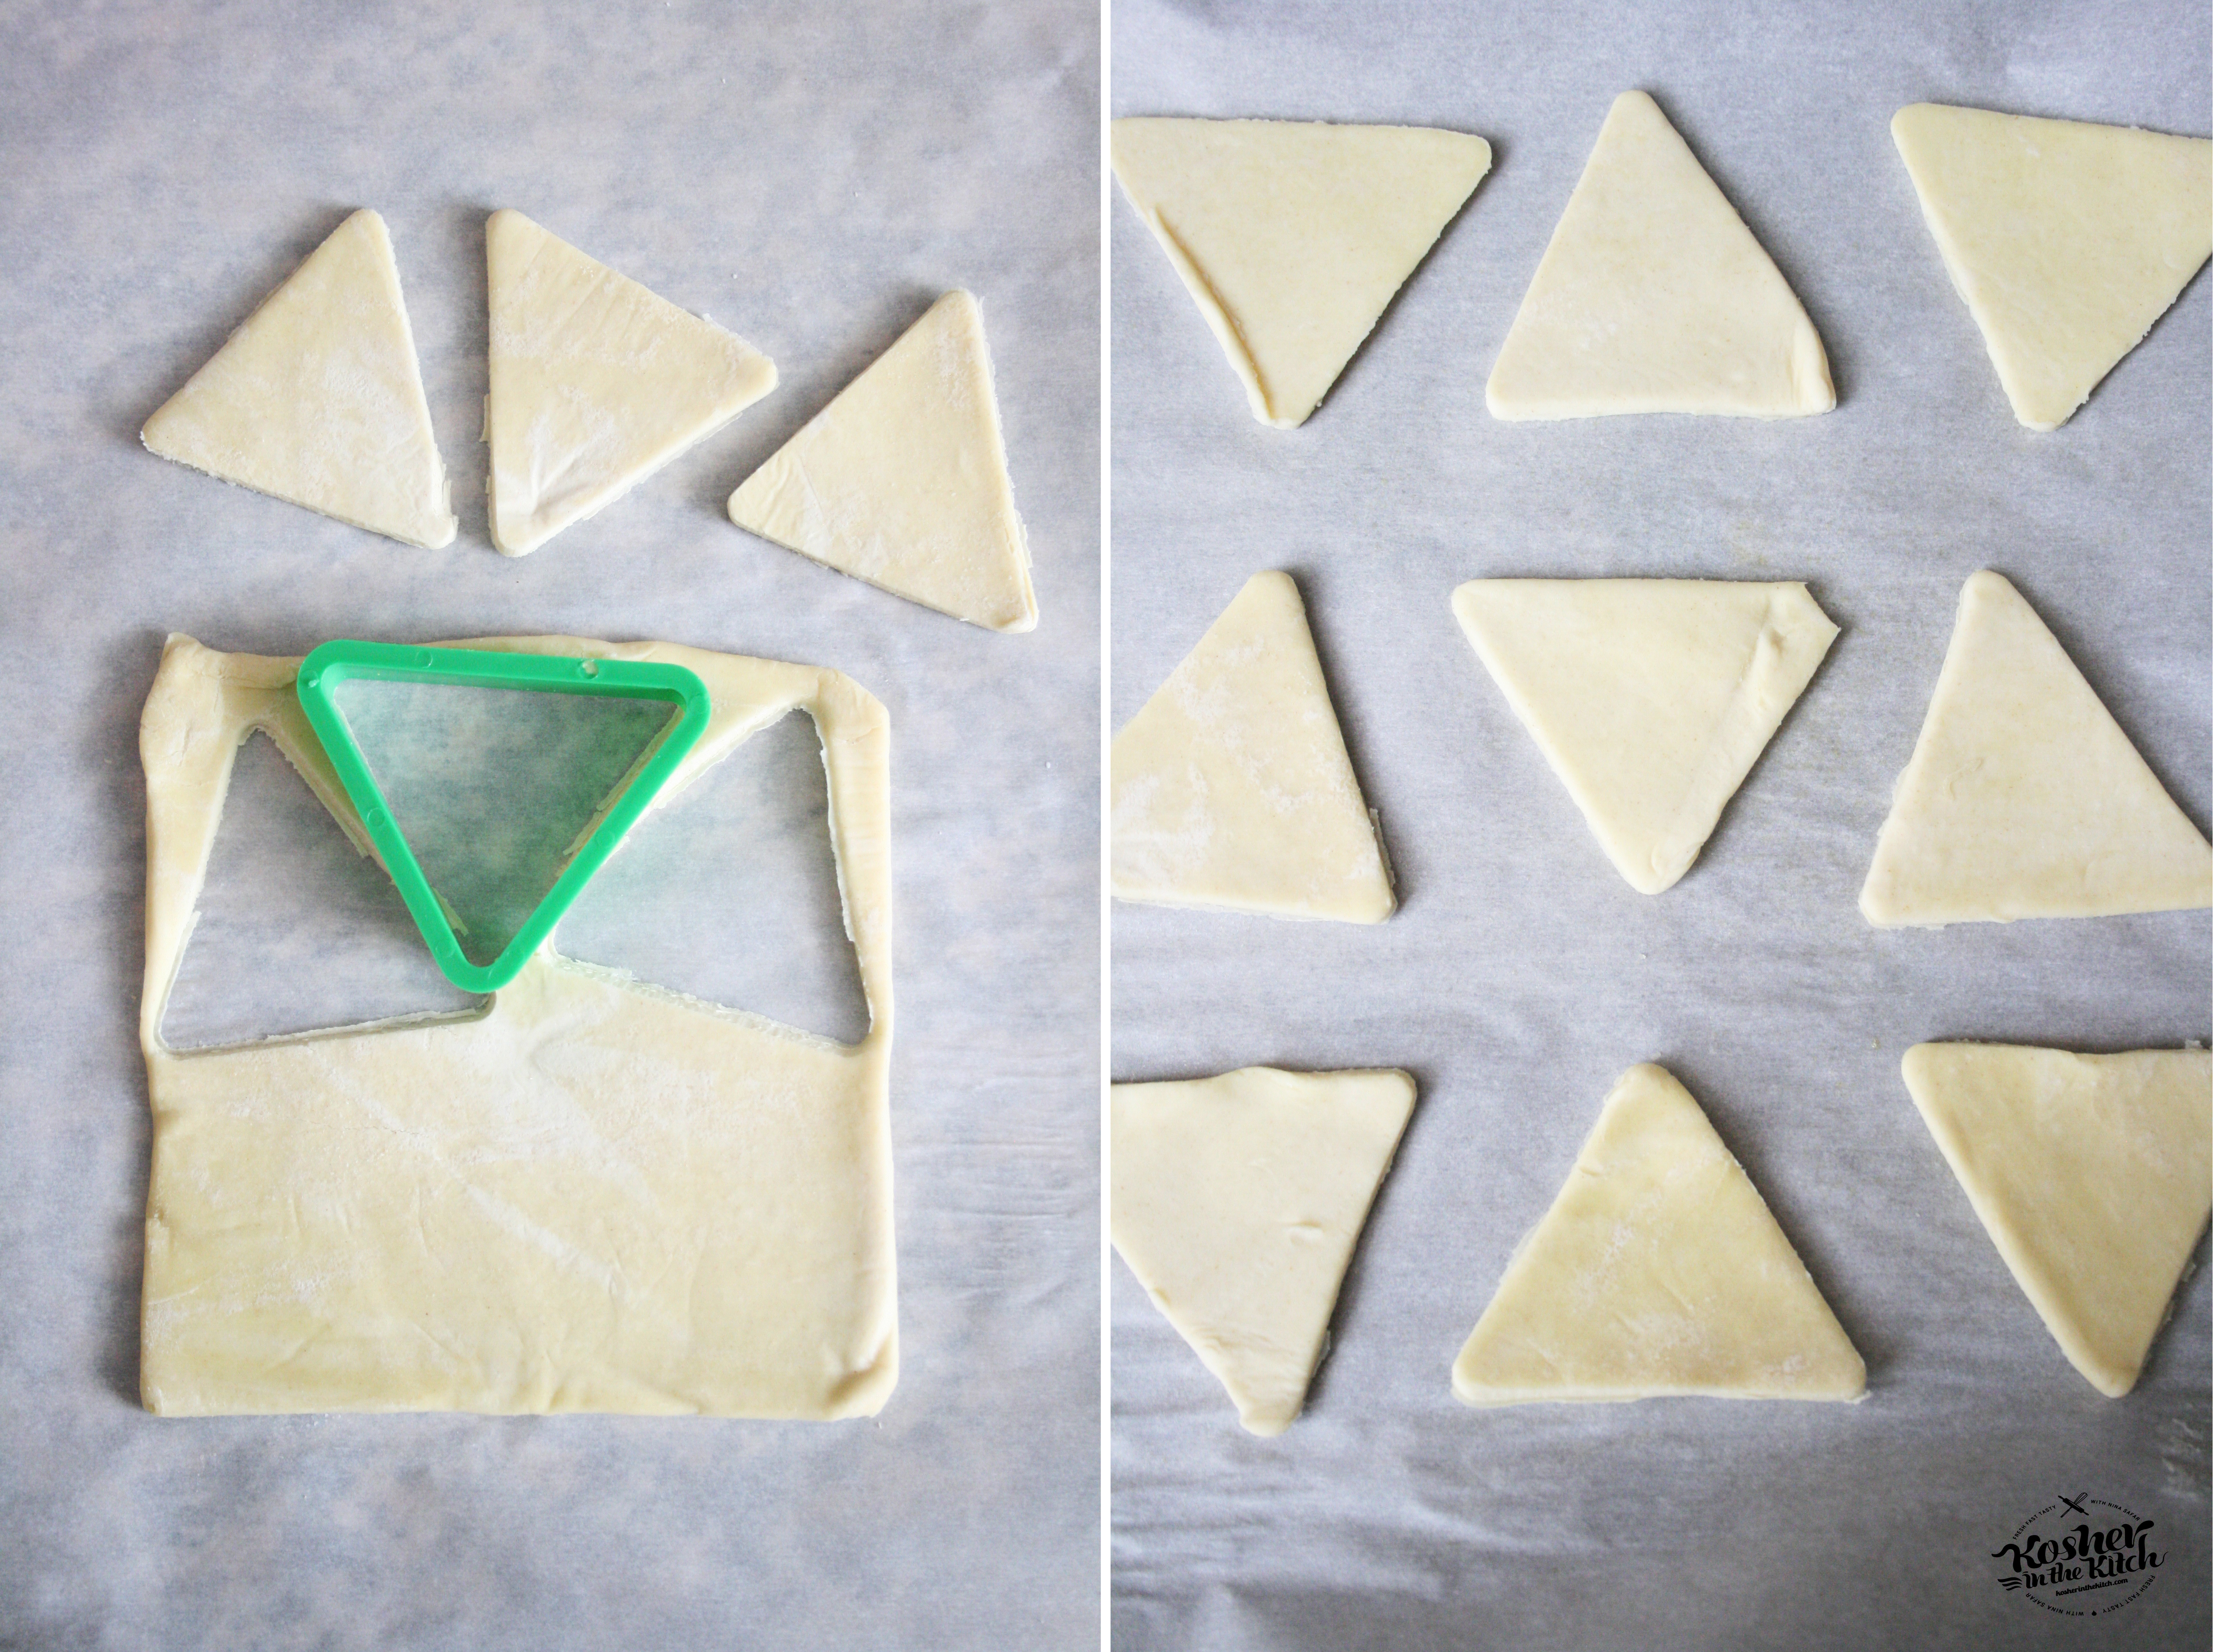 Cut triangles out of puff pastry using cookie cutter